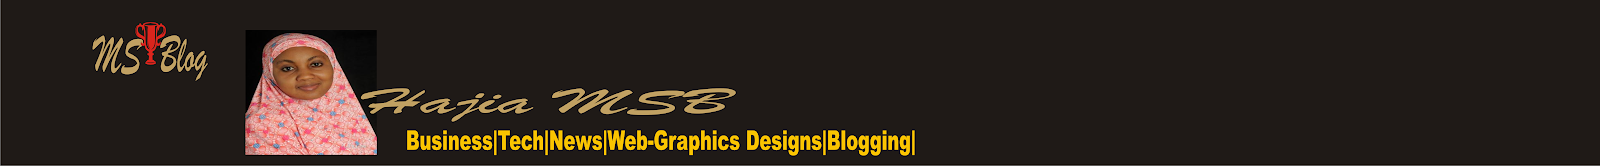 Business|Tech|News|Web-Graphics Designs|Blogging